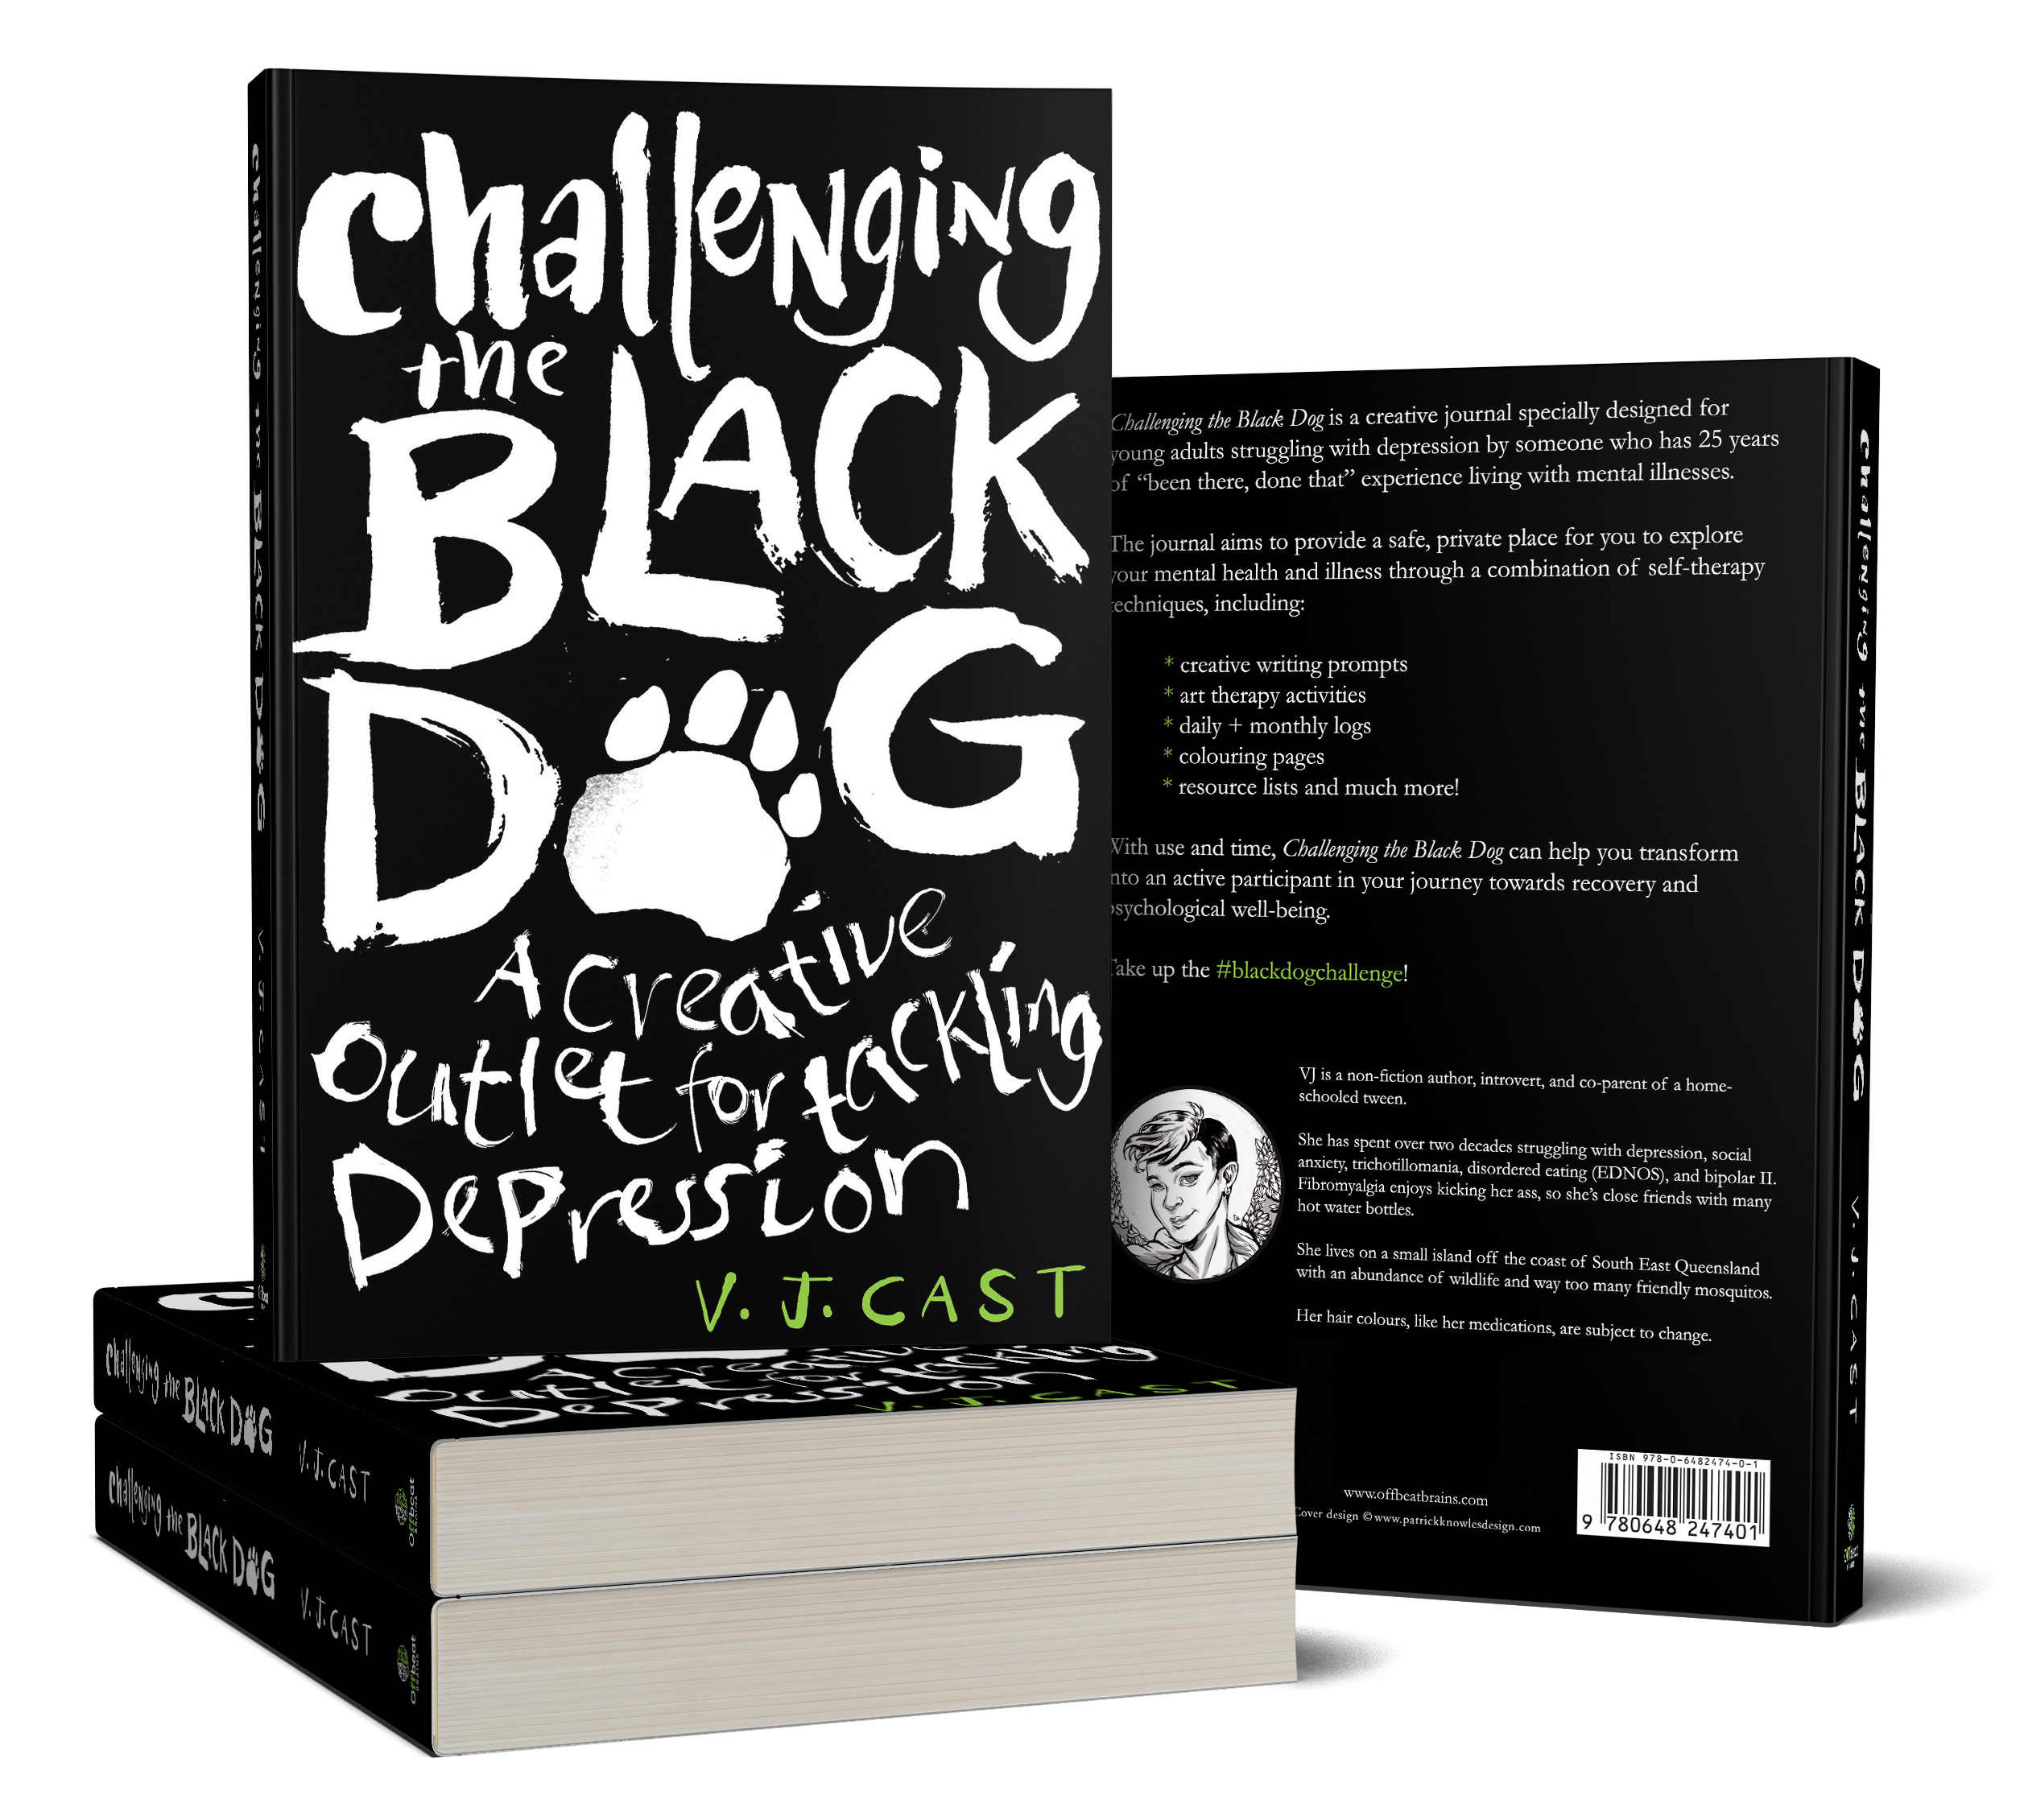 Challenging the Black Dog: A Creative Outlet for Tackling